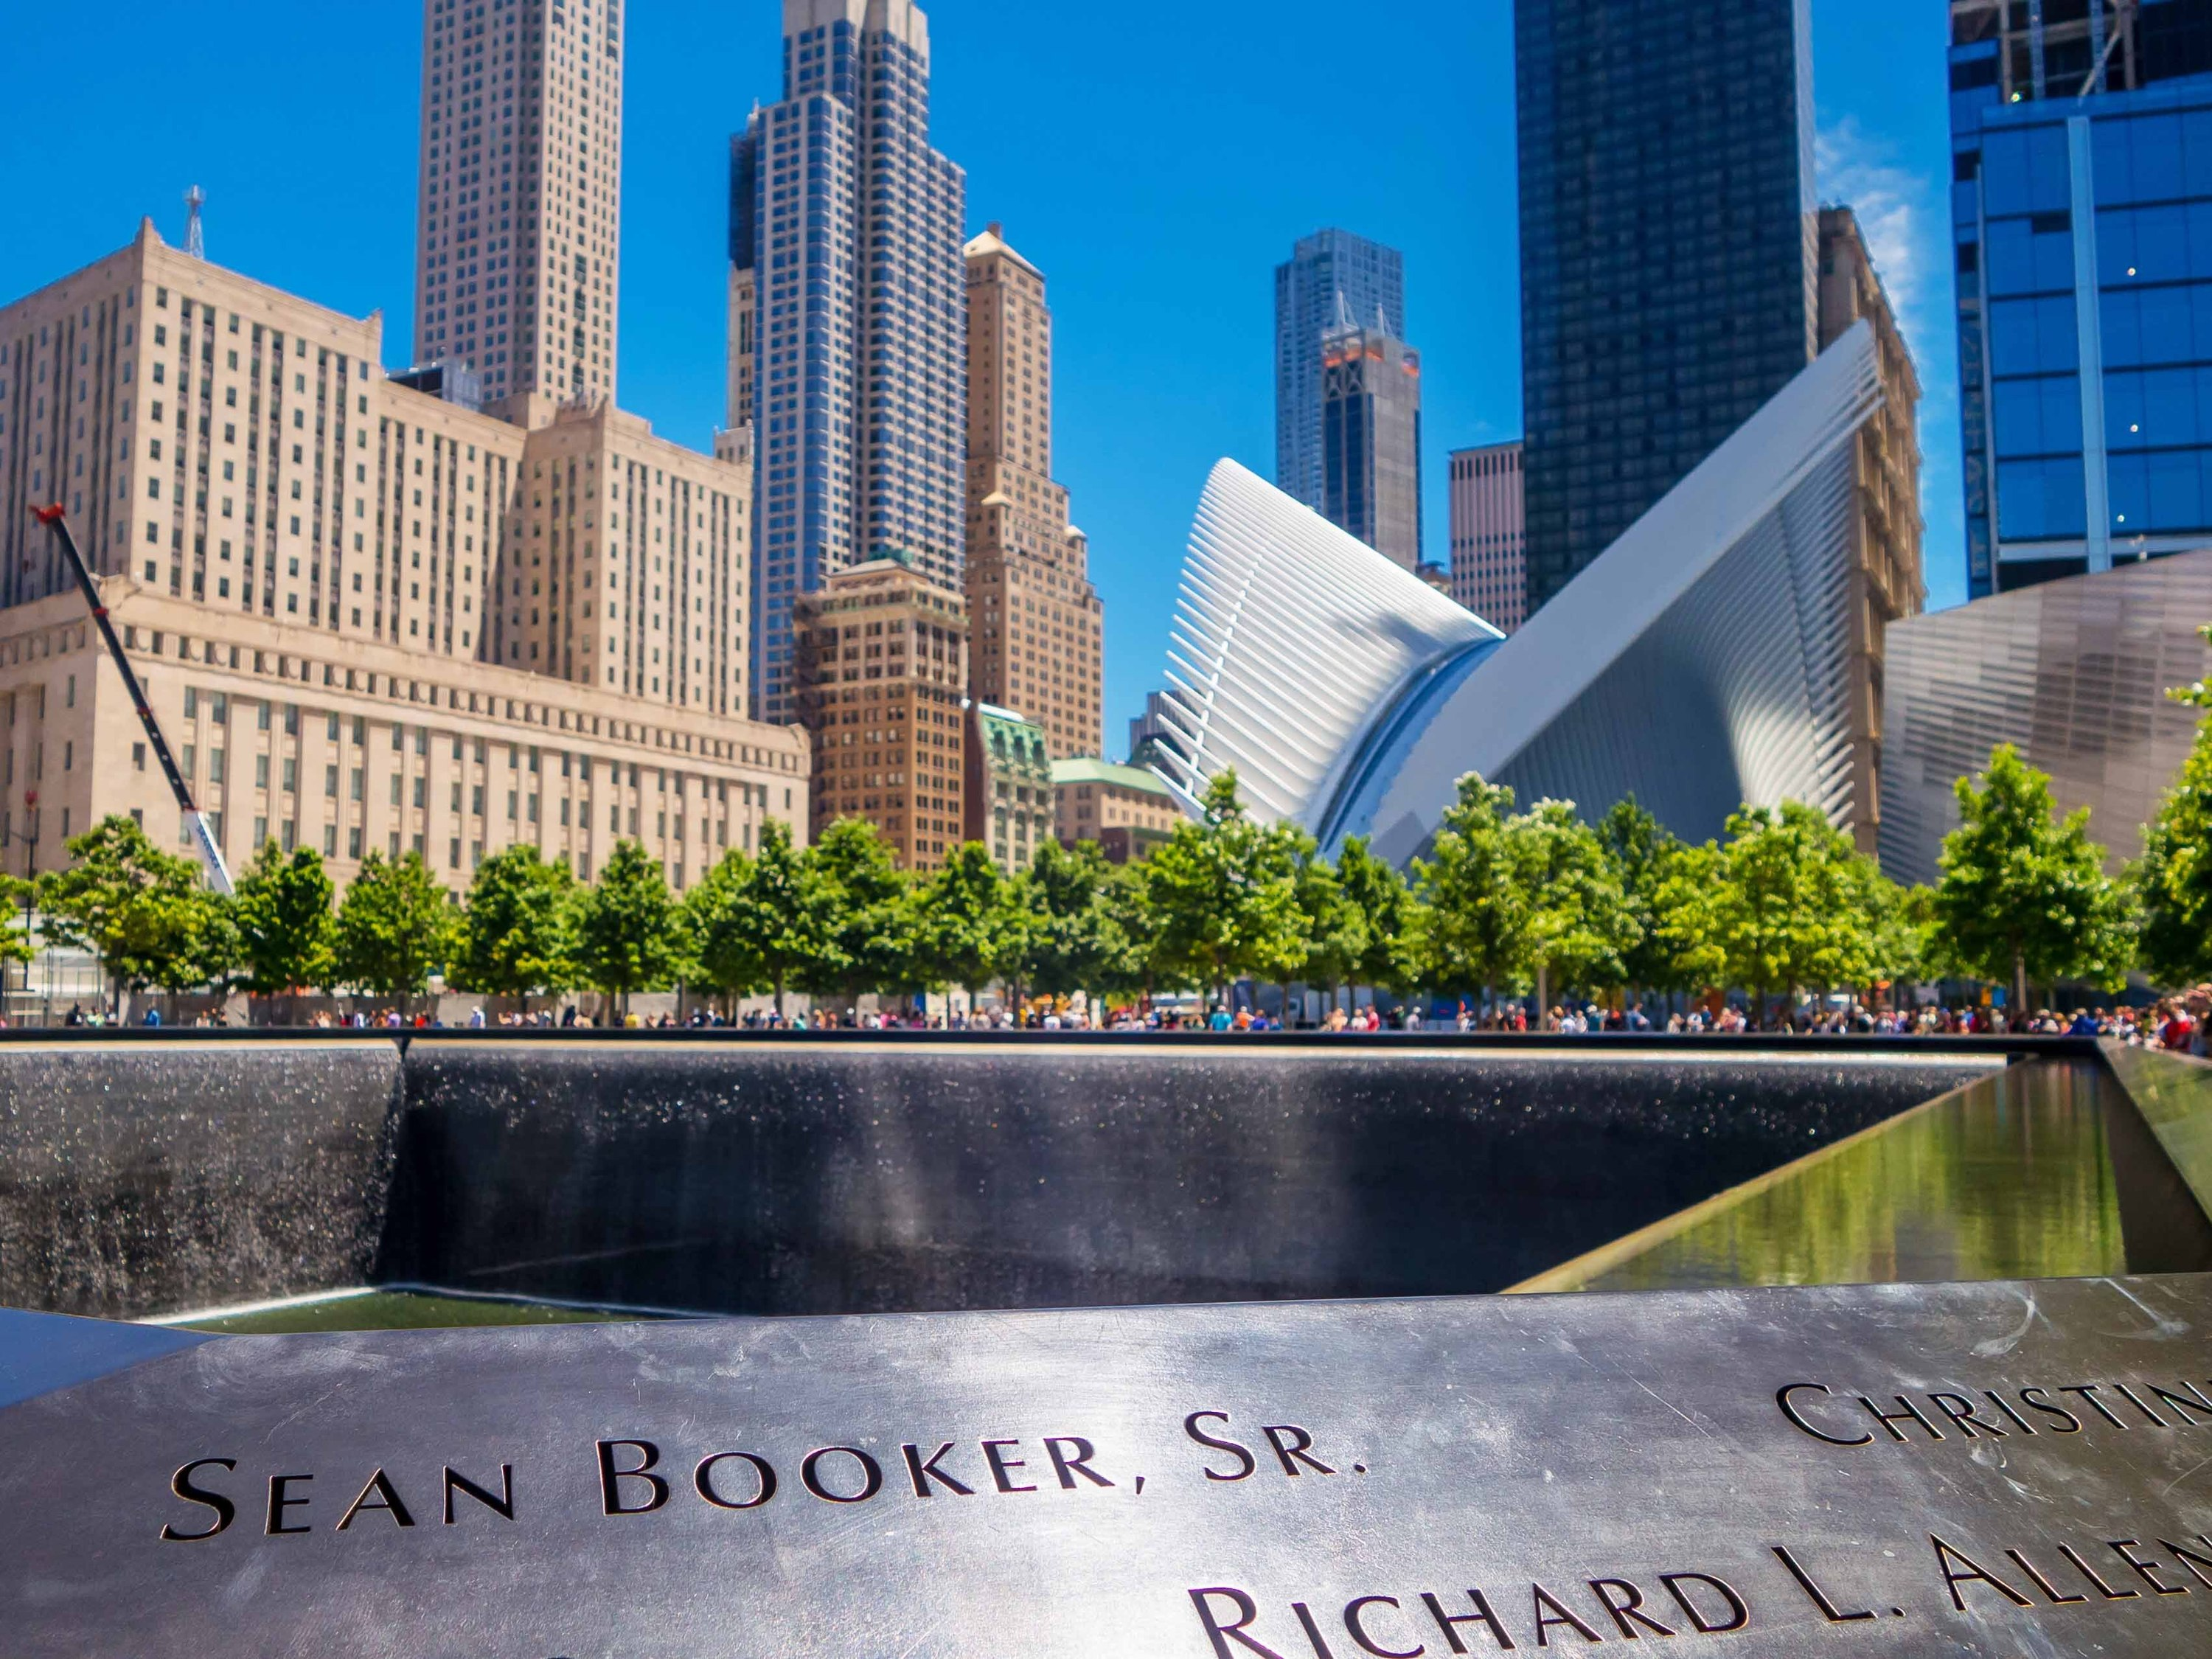 The 9/11 Memorial has reopened to the public